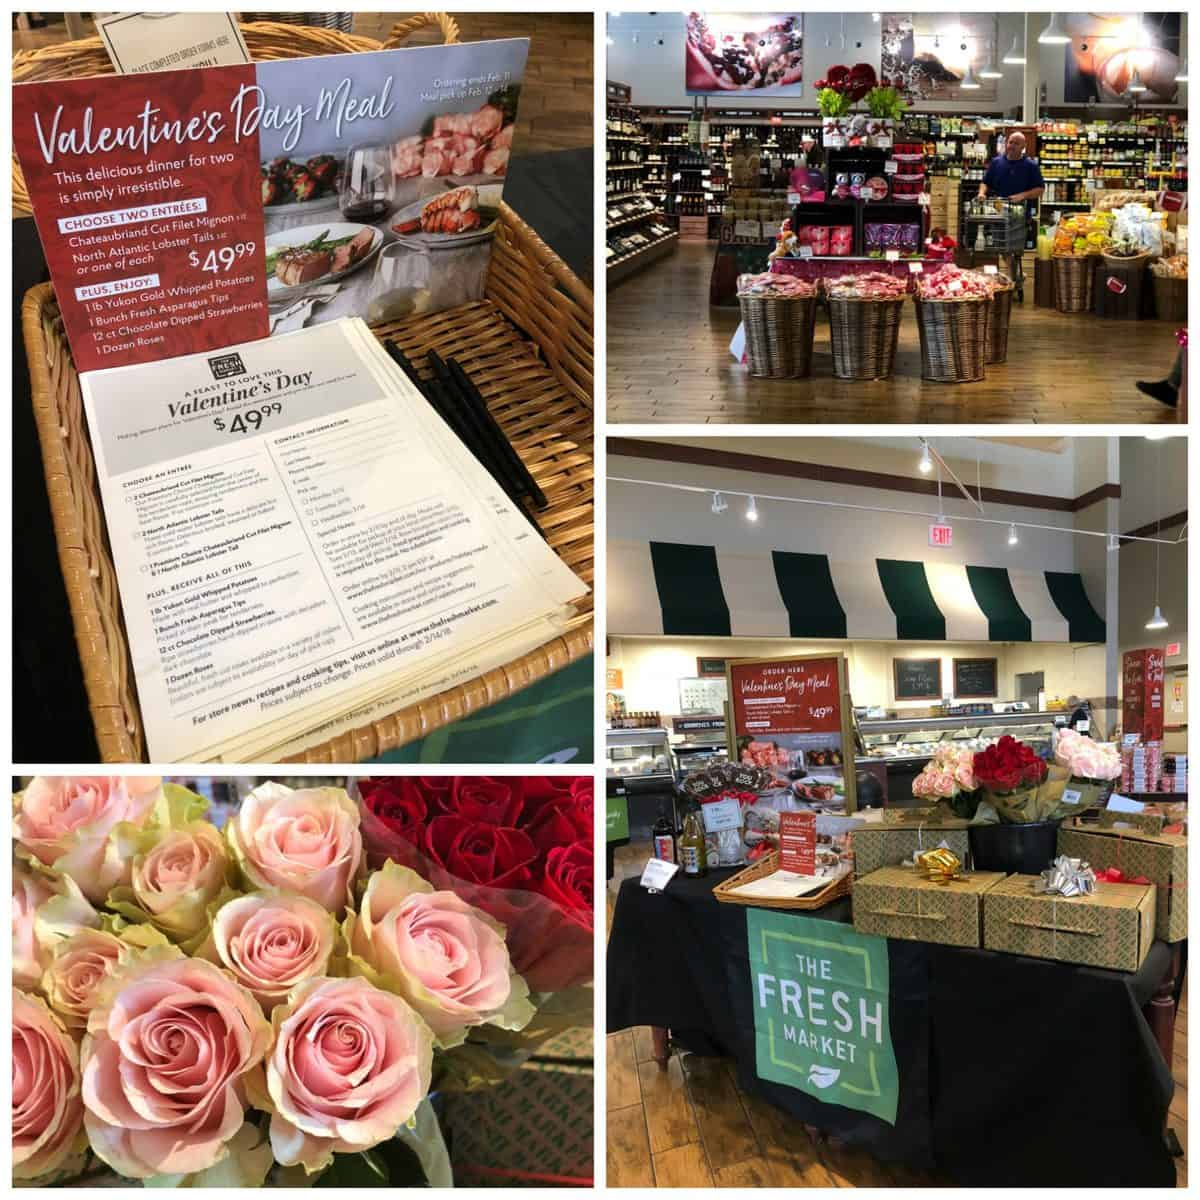 4 photo collage of The Fresh Market on Valentine's Day with roses for sale and special meal deals.